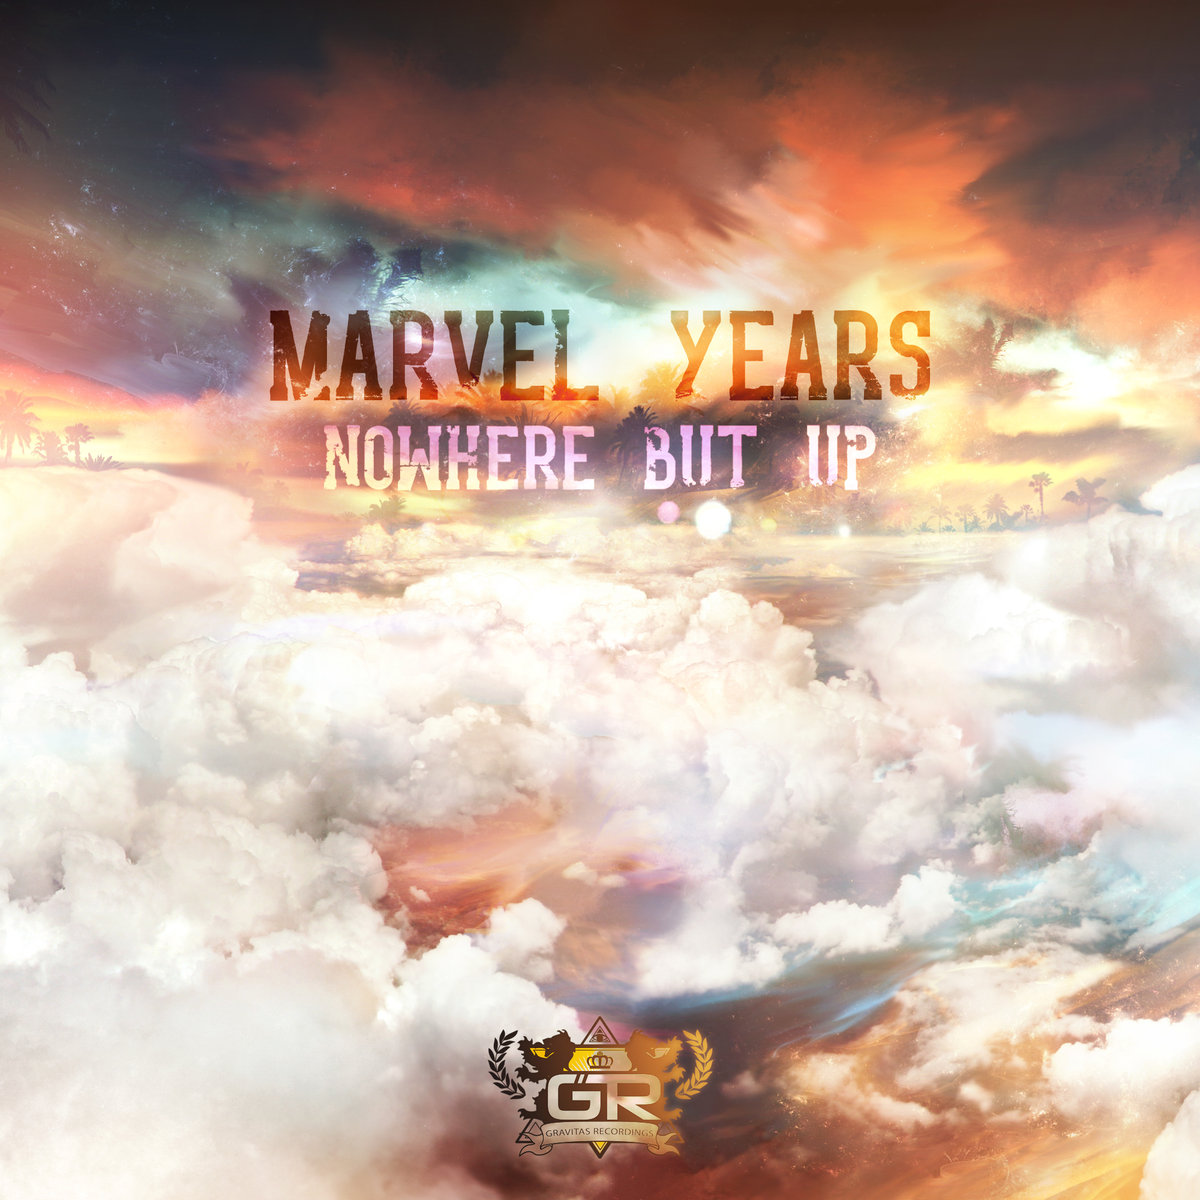 Marvel Years - Turn It Loose @ 'Nowhere But Up' album (hip hop, electro)